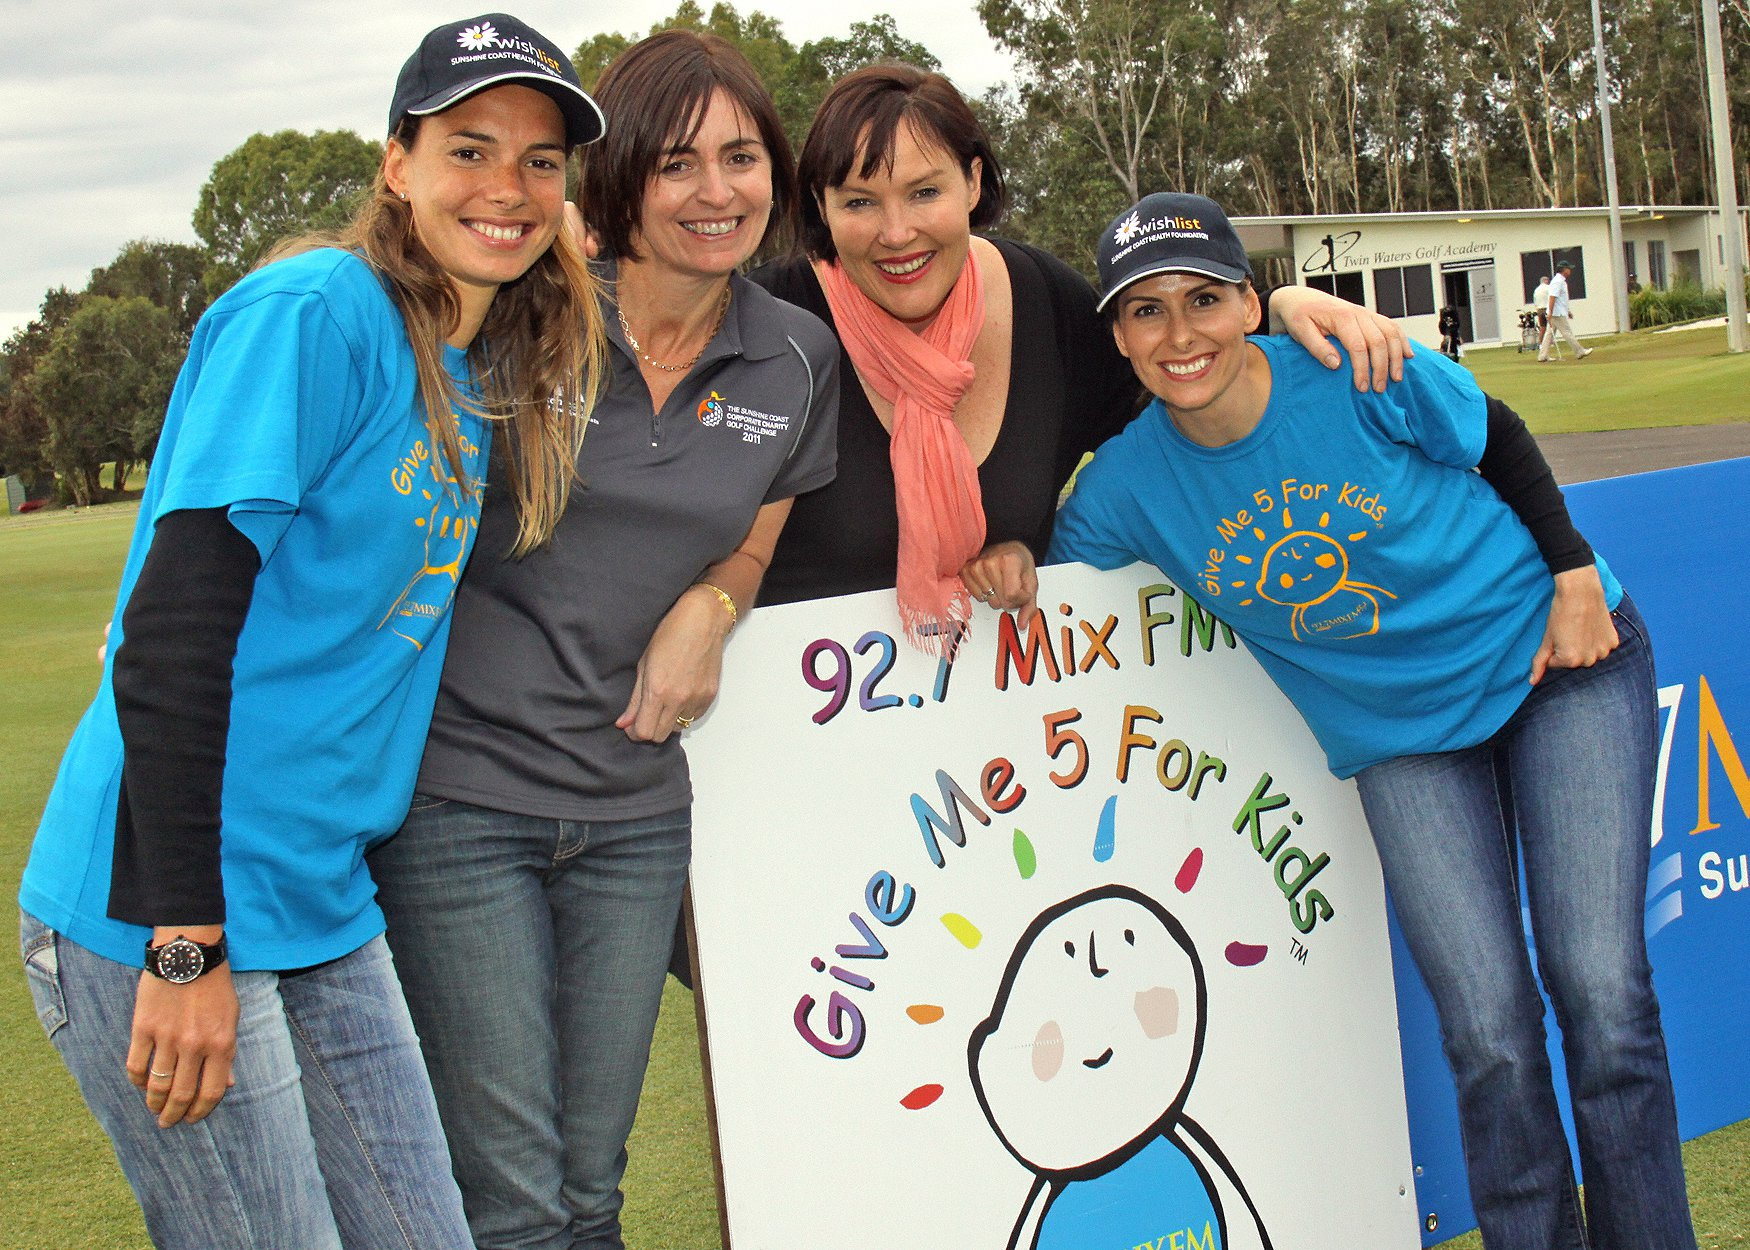 The Sunshine Coast Corporate Charity Golf Challenge – this was run as part of MixFM's Give Me 5 for Kids annual campaign with all funds raised going to Wishlist. Over the 10 years that we held this event, Aitken Legal raised nearly $400,000 net of costs for Wishlist.